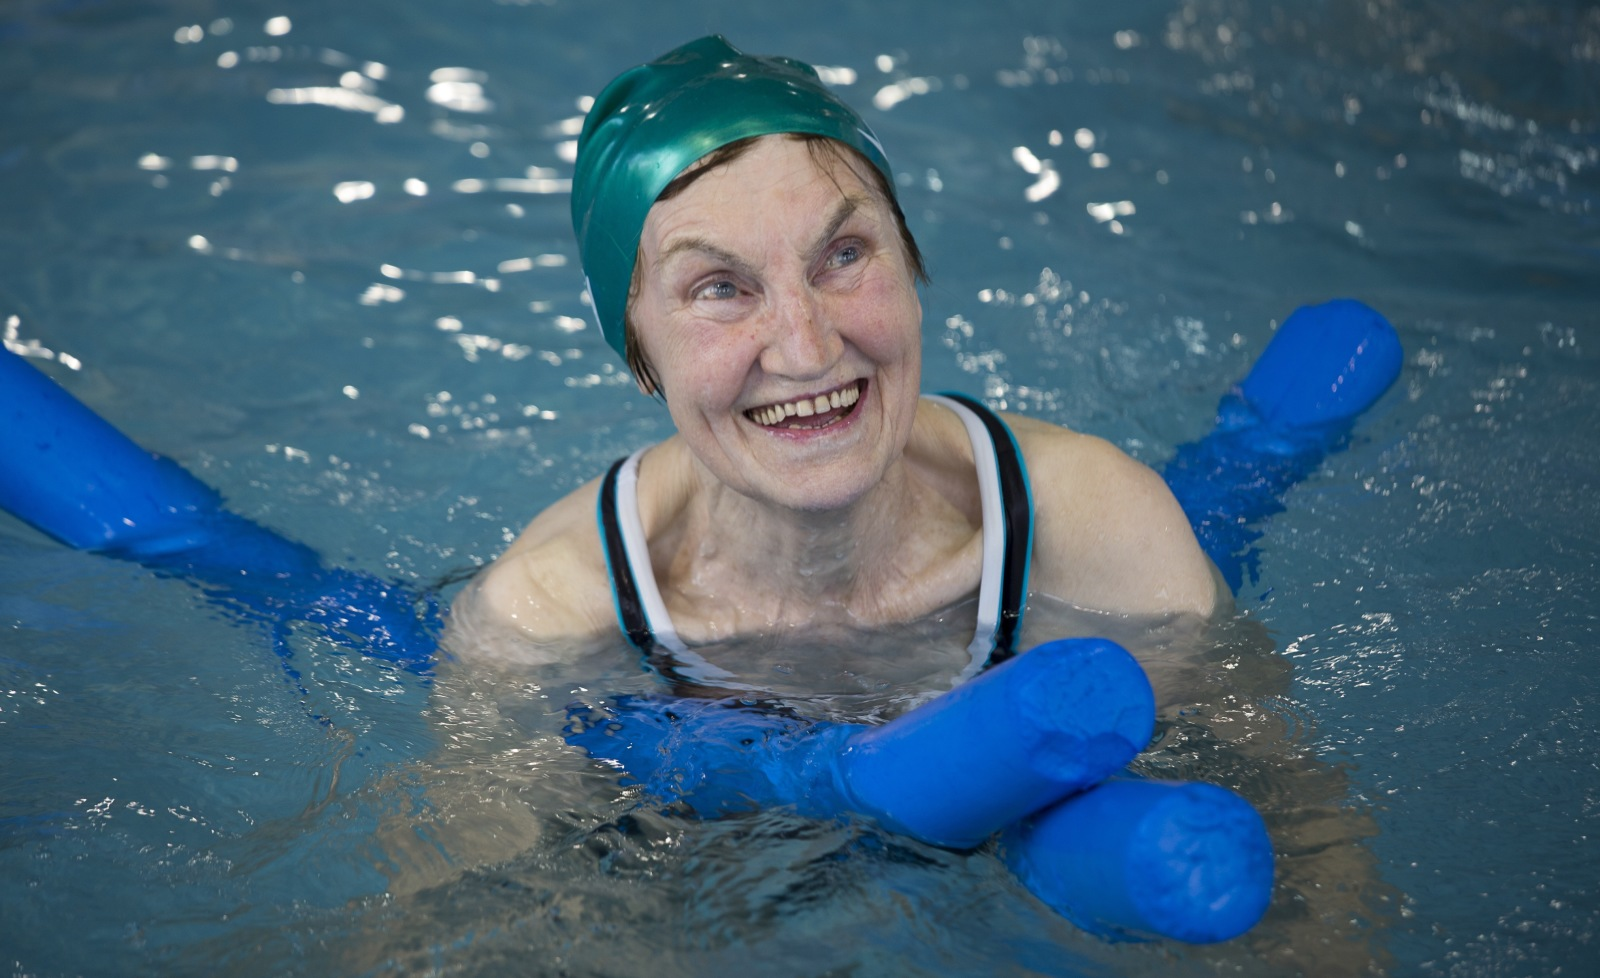 Aquagym Seniors - Retraite Sportive de Paris